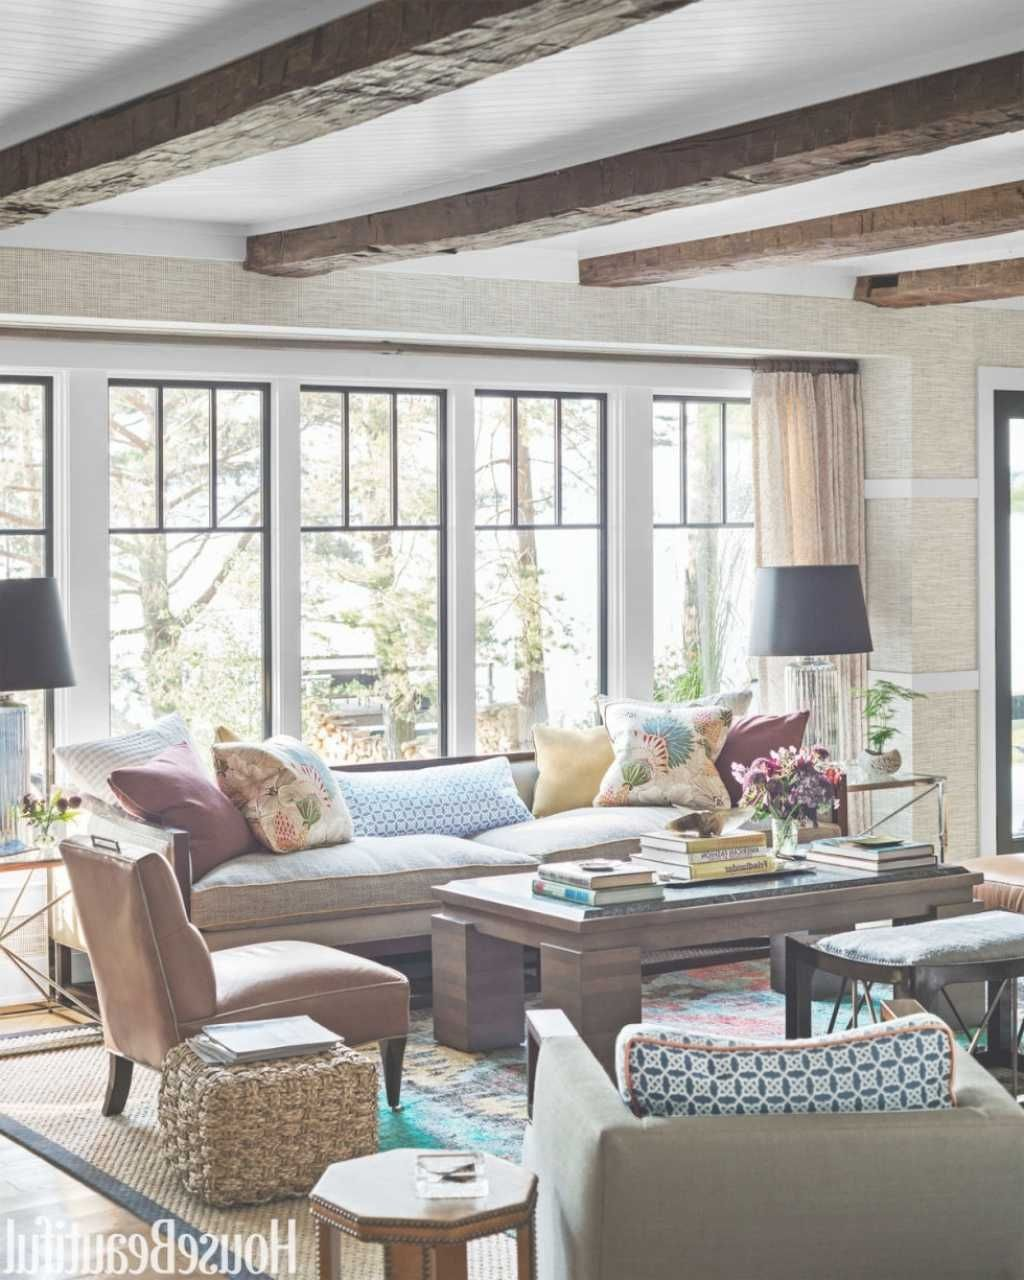 Rustic Lake House Decorating Ideas | The House Provides A Range Of Romantic  Pursuits And Scenery. Small Houses Seem Great With A Modern Type Of Design.